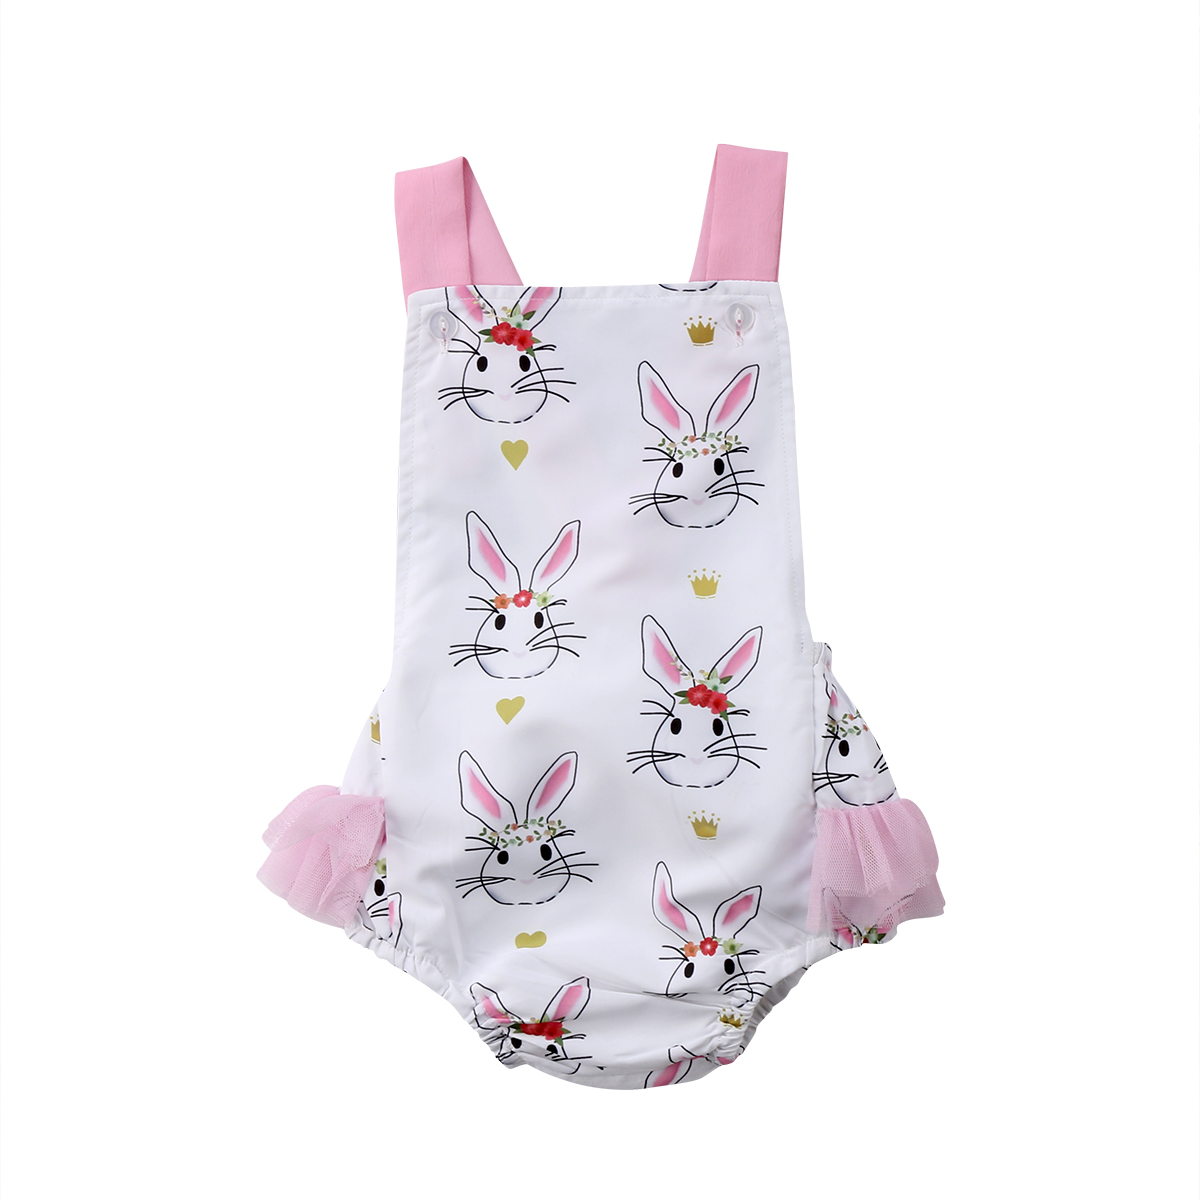 3a48ad449 Pudcoco 2018 Newborn Baby Girls Romper Cute Easter Bunny Pattern ...